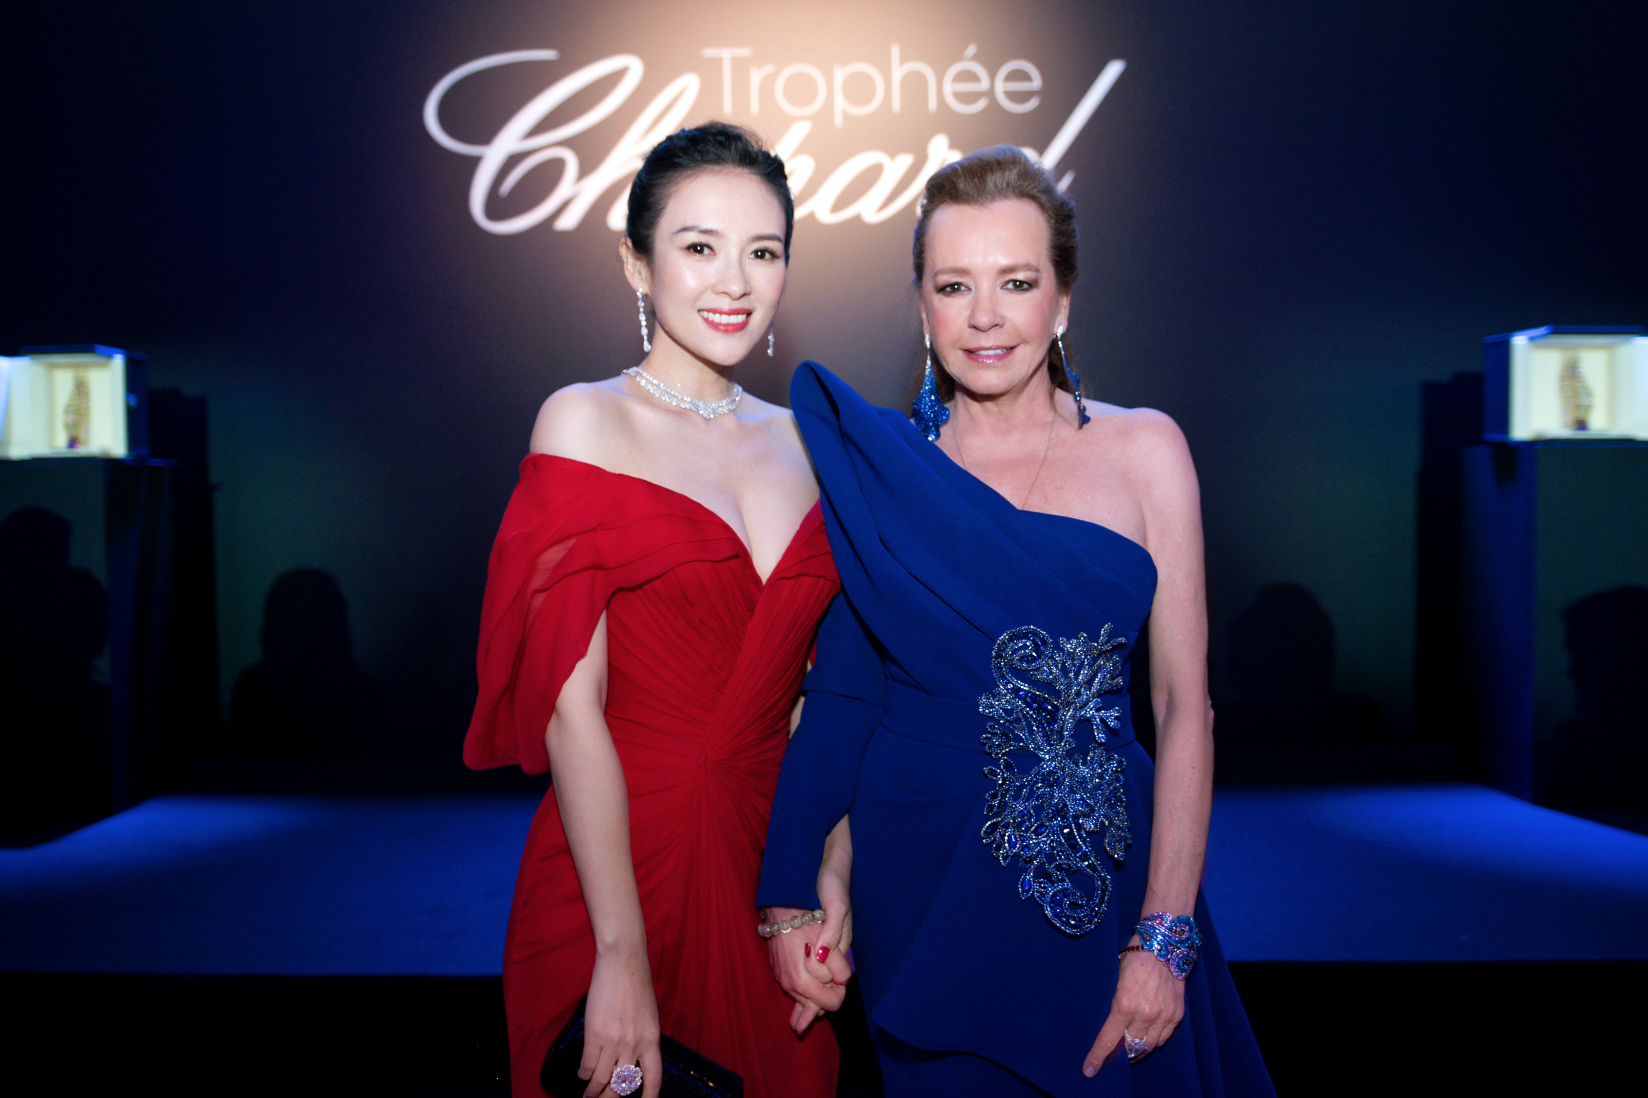 Cannes Film Festival 2019: Trophée Chopard Honours Cinema's Rising Stars